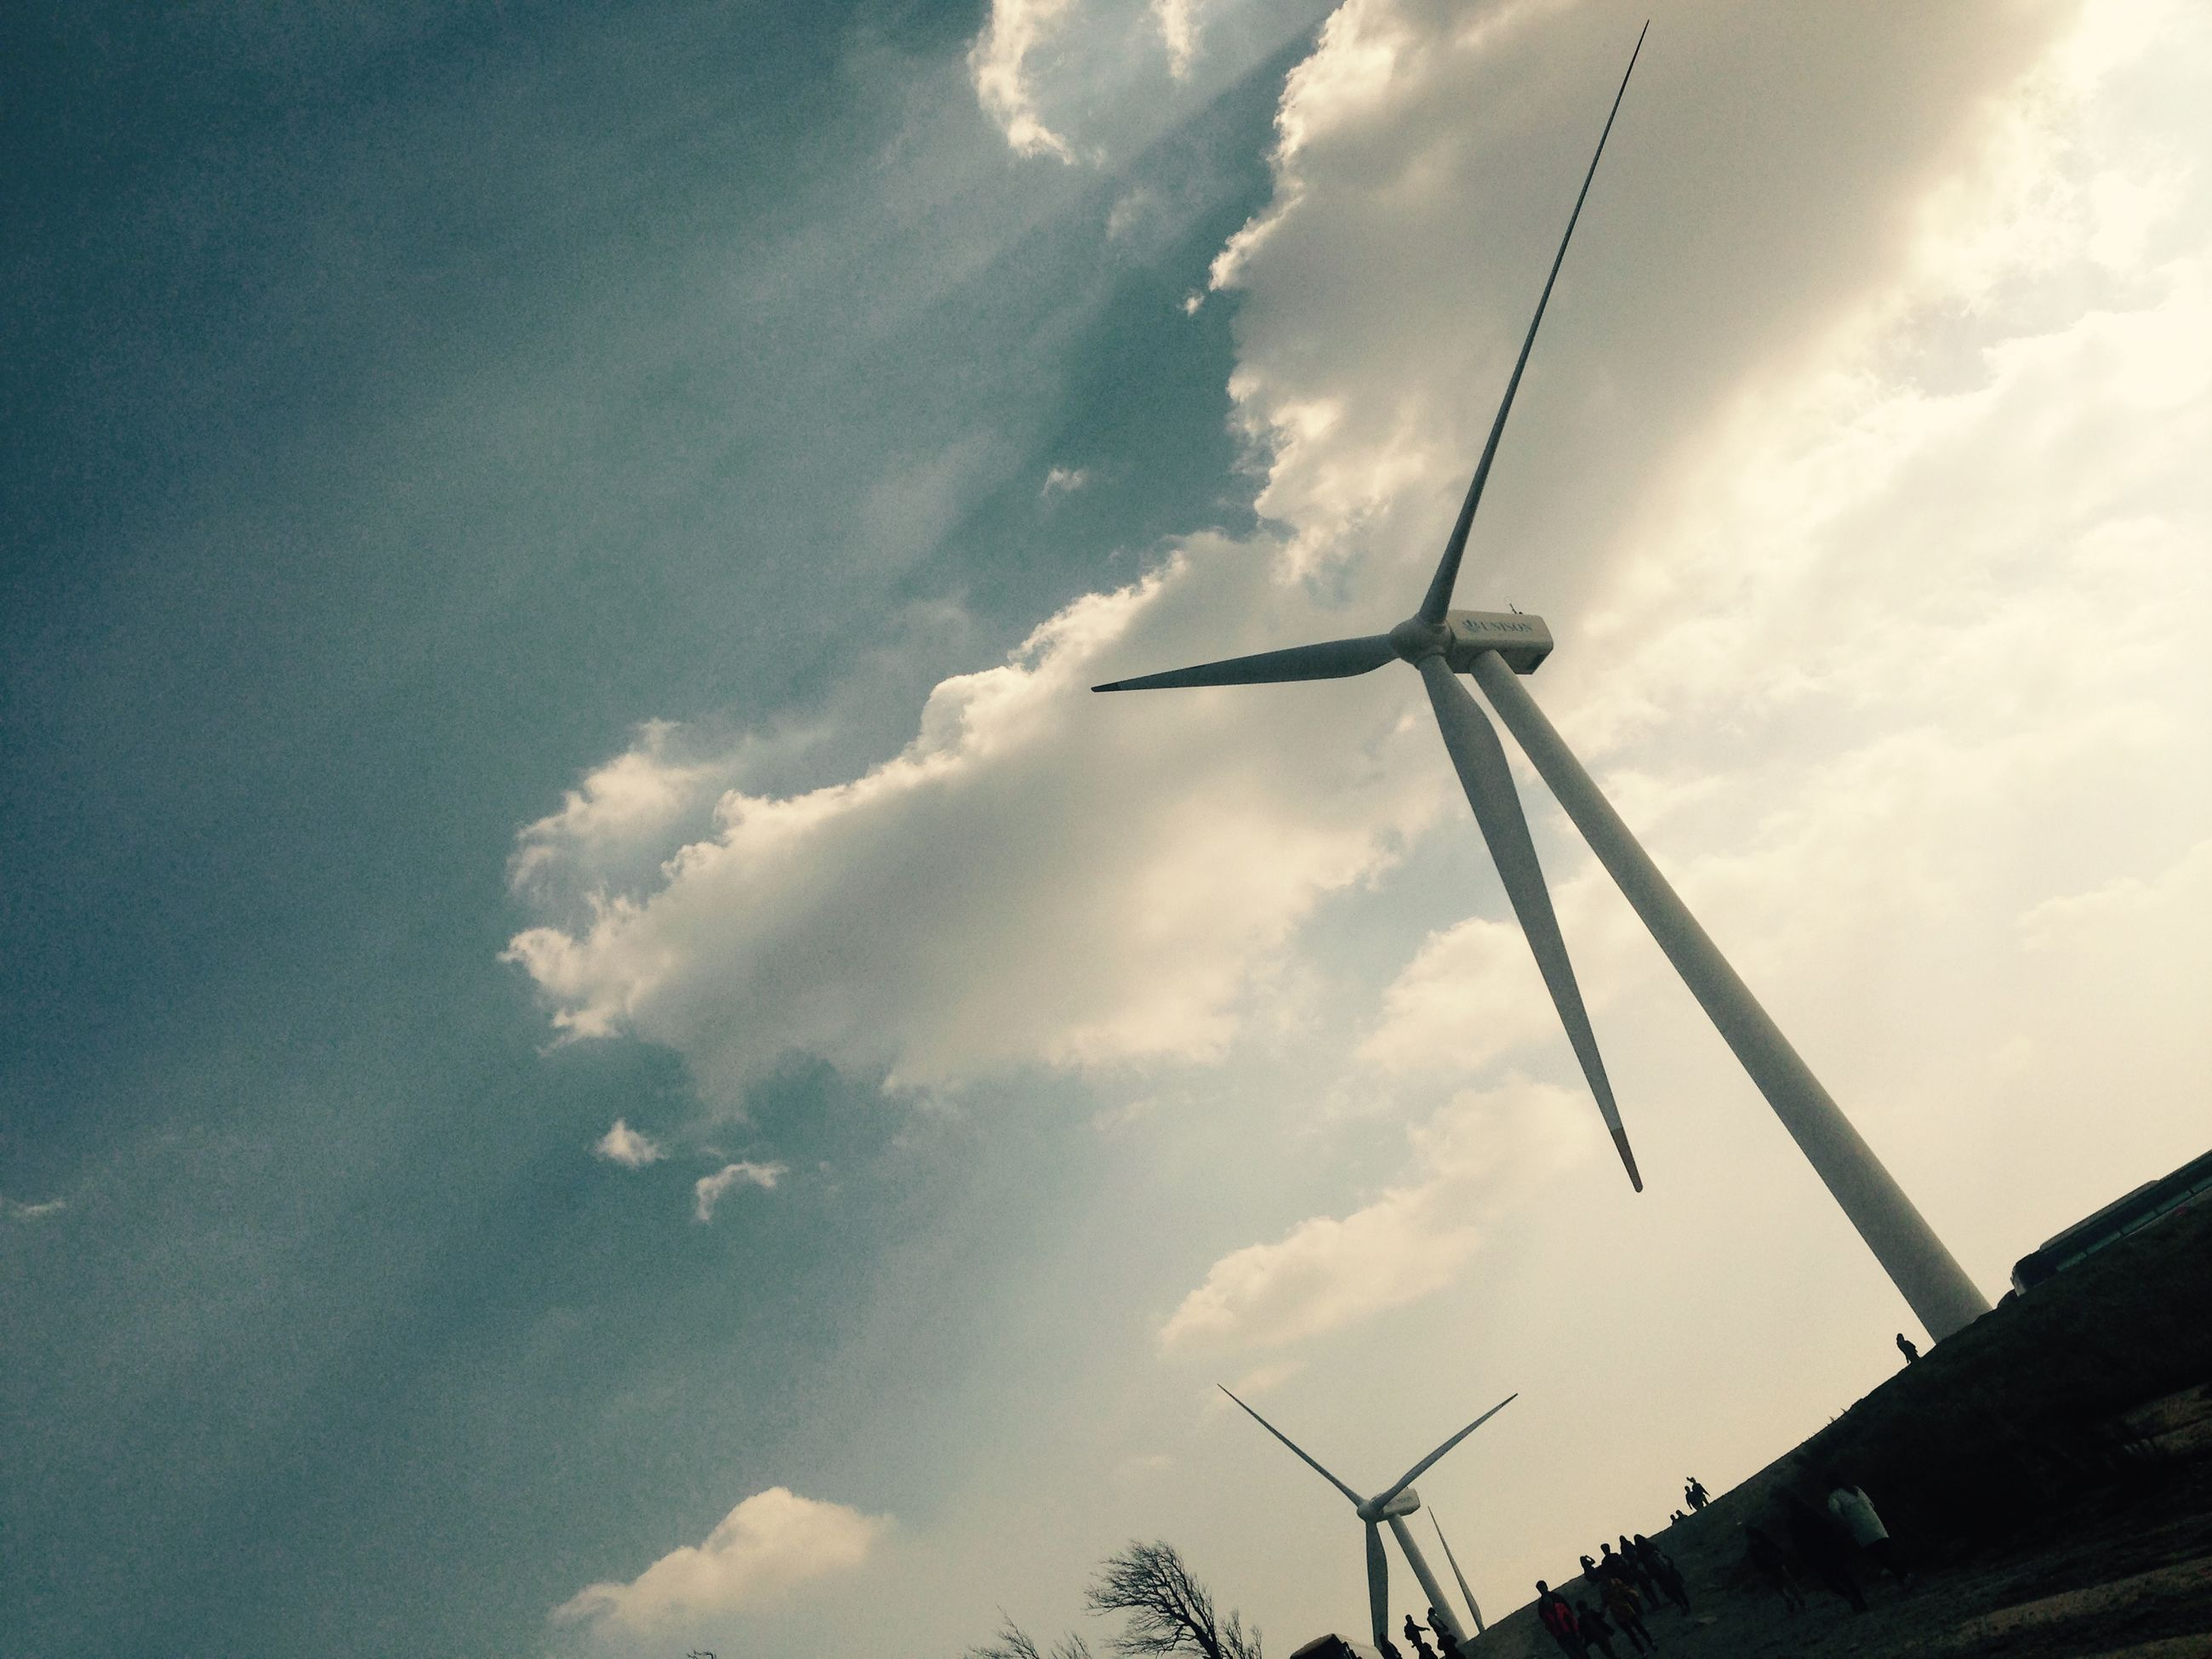 low angle view, fuel and power generation, sky, technology, wind power, alternative energy, wind turbine, windmill, cloud - sky, environmental conservation, renewable energy, electricity, electricity pylon, cloud, cloudy, power supply, power line, connection, traditional windmill, silhouette